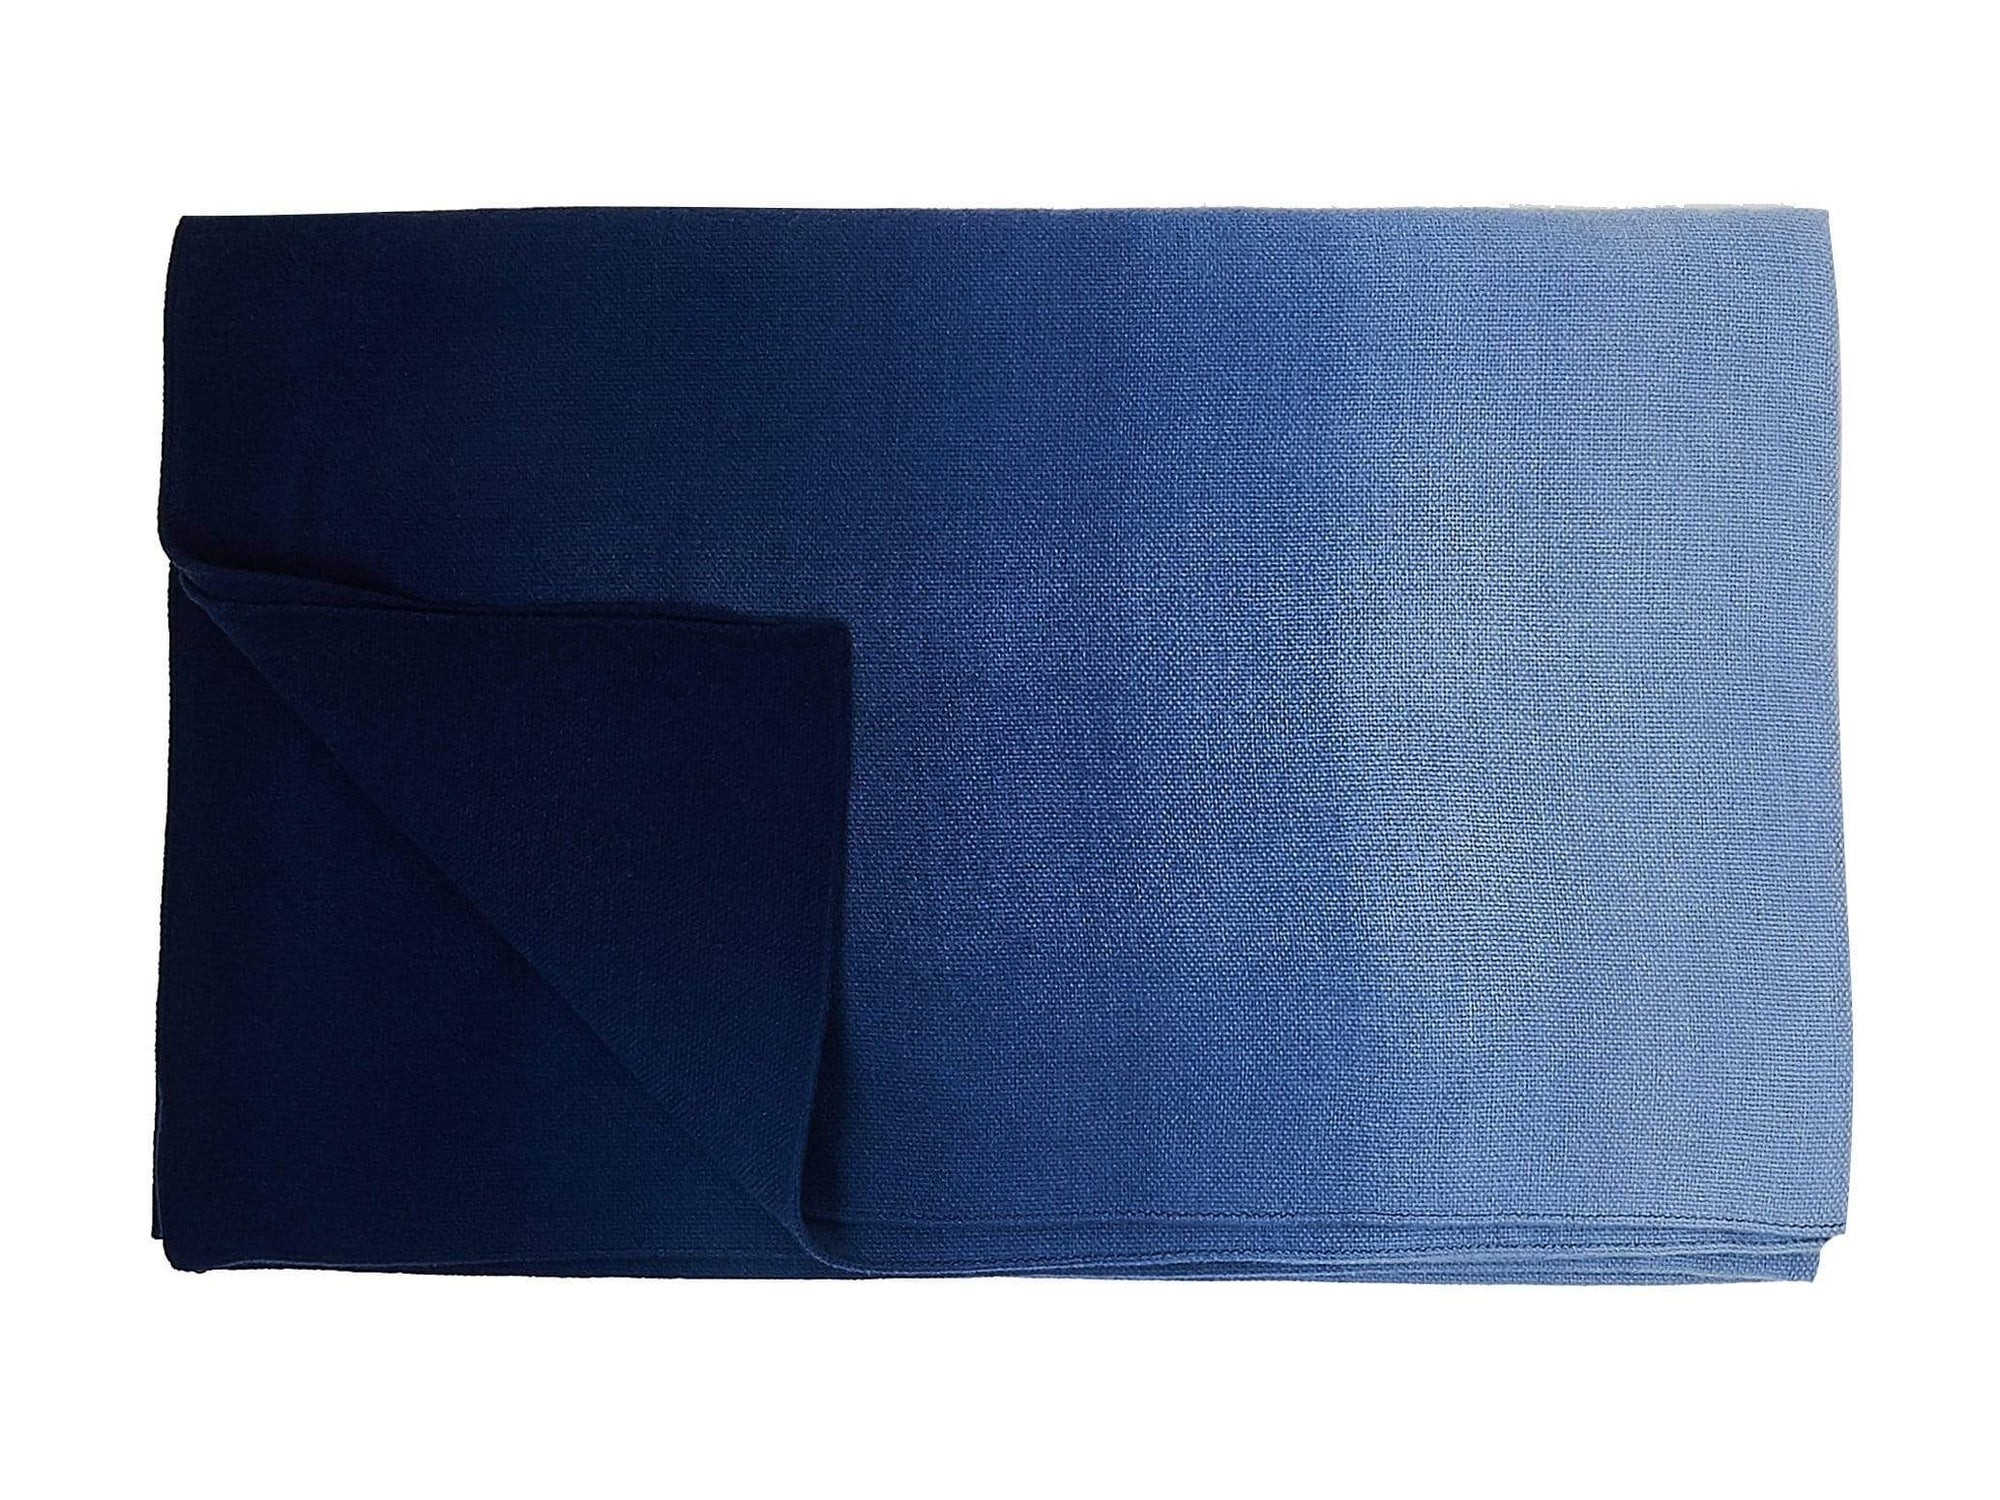 S. Harris S. Harris Spring Ombre Cashmere Throw Blanket in Sky Cloud 7680101